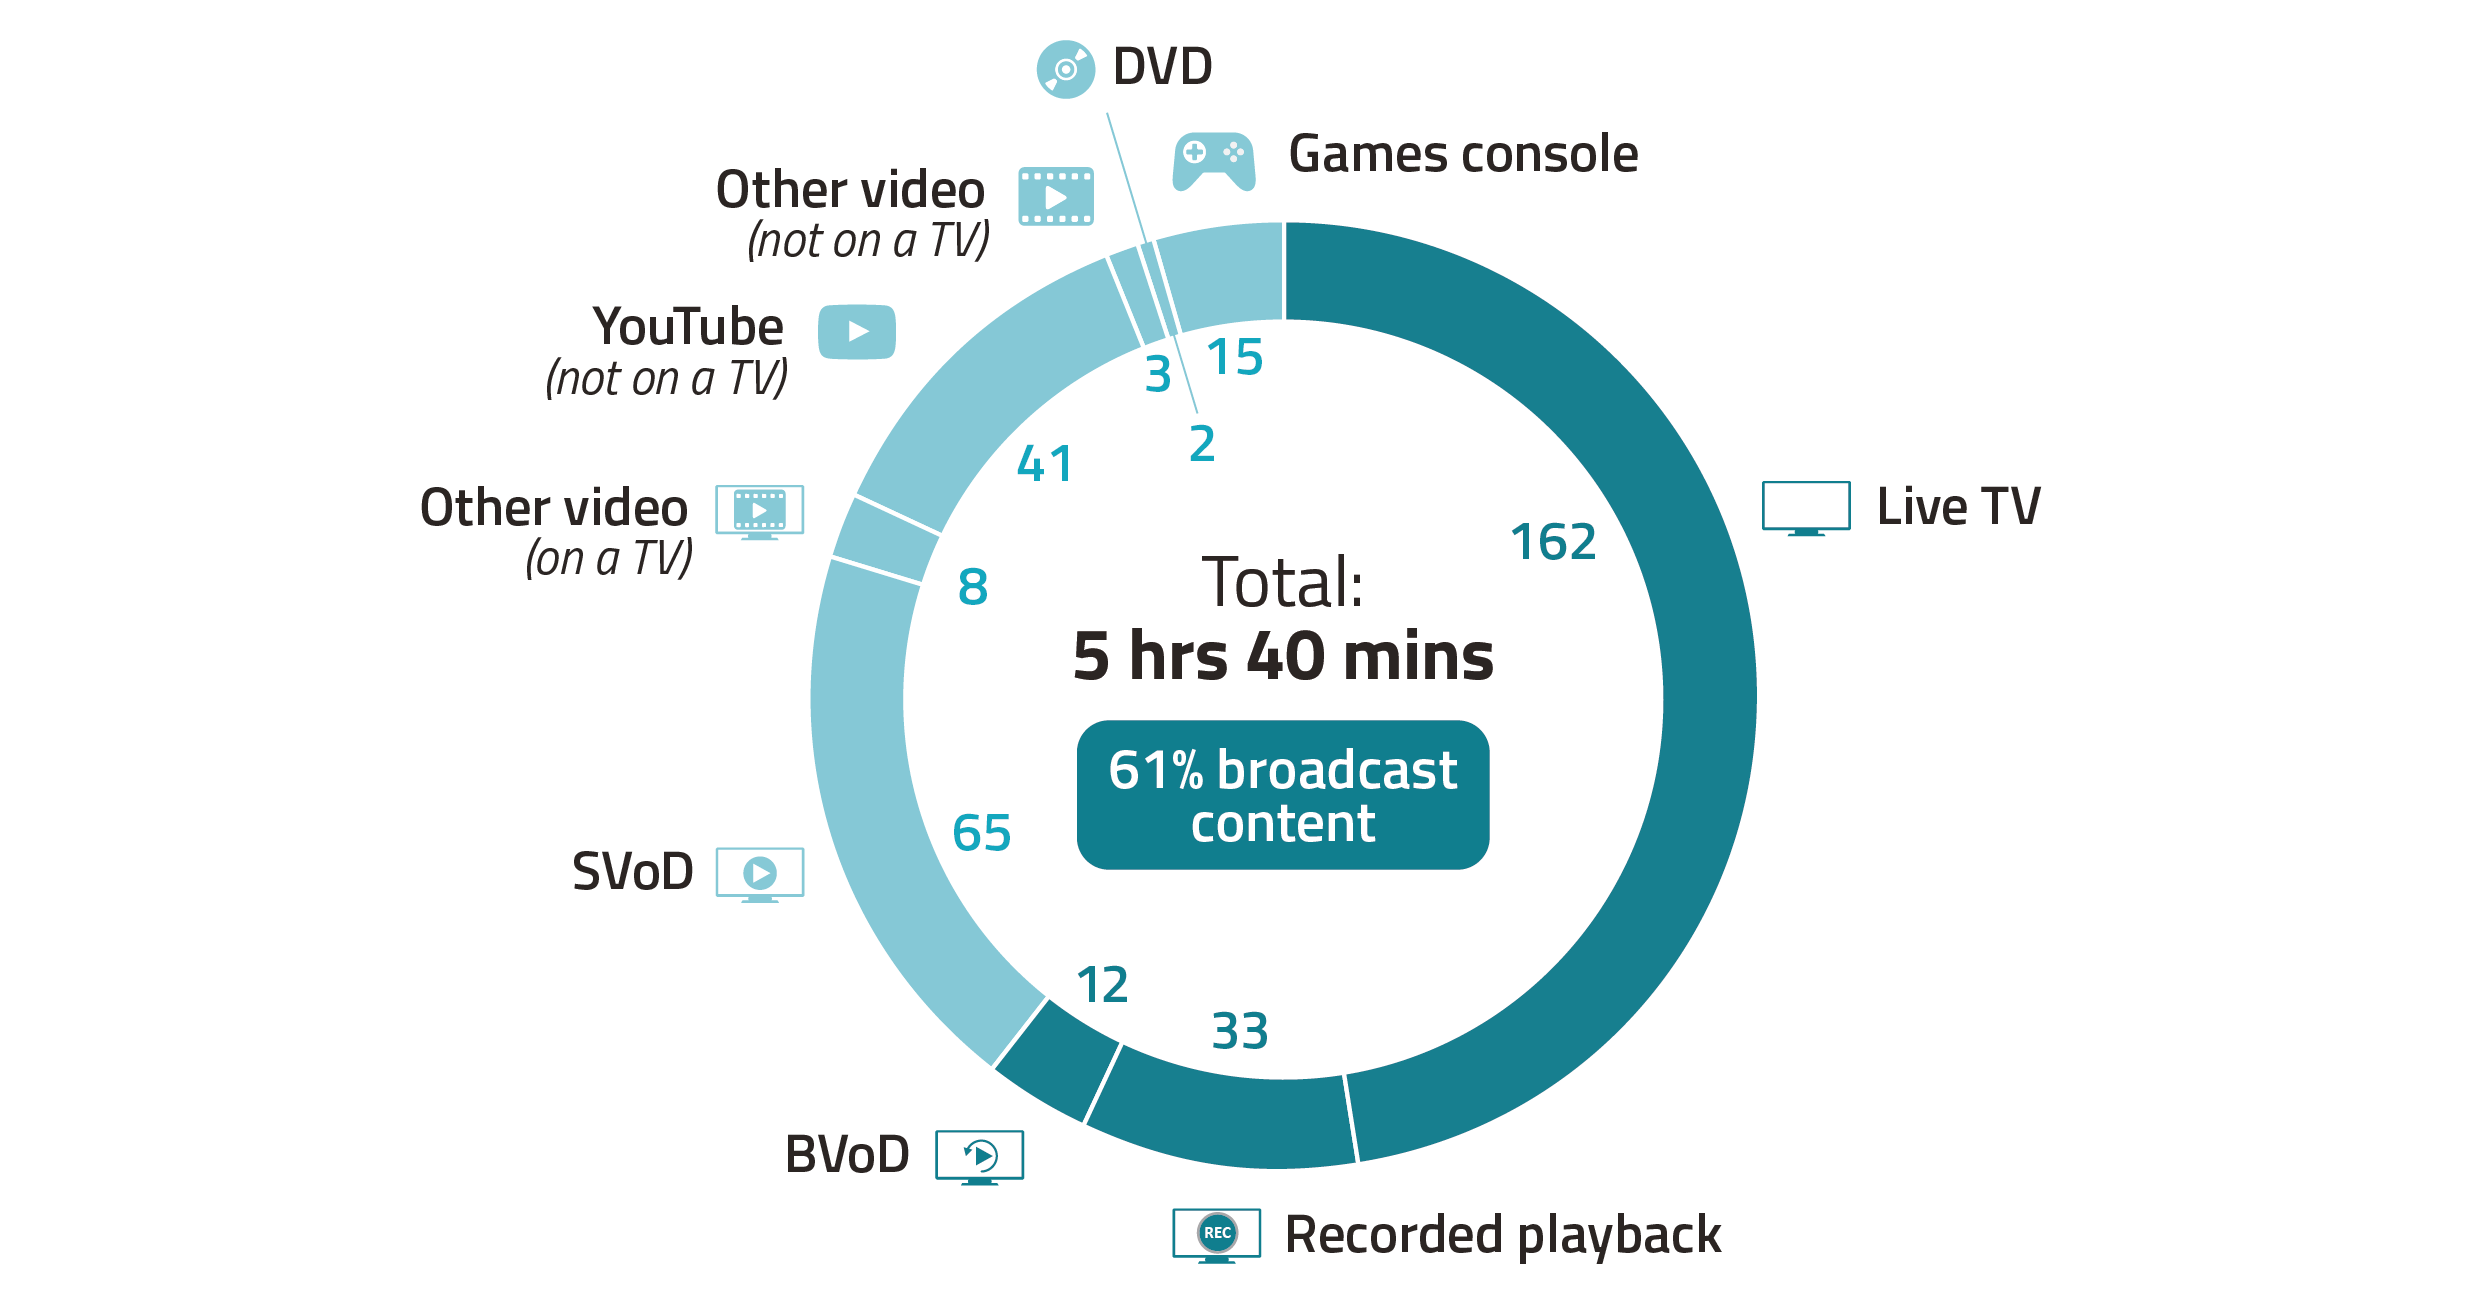 Image shows a doughnut chart showing the average minutes of viewing spent  per person per day across different platforms in 2020. The total viewing per person per day across 2020 was 5 hours and 40 minutes of which the majority (162 minutes) was spent watching live TV.